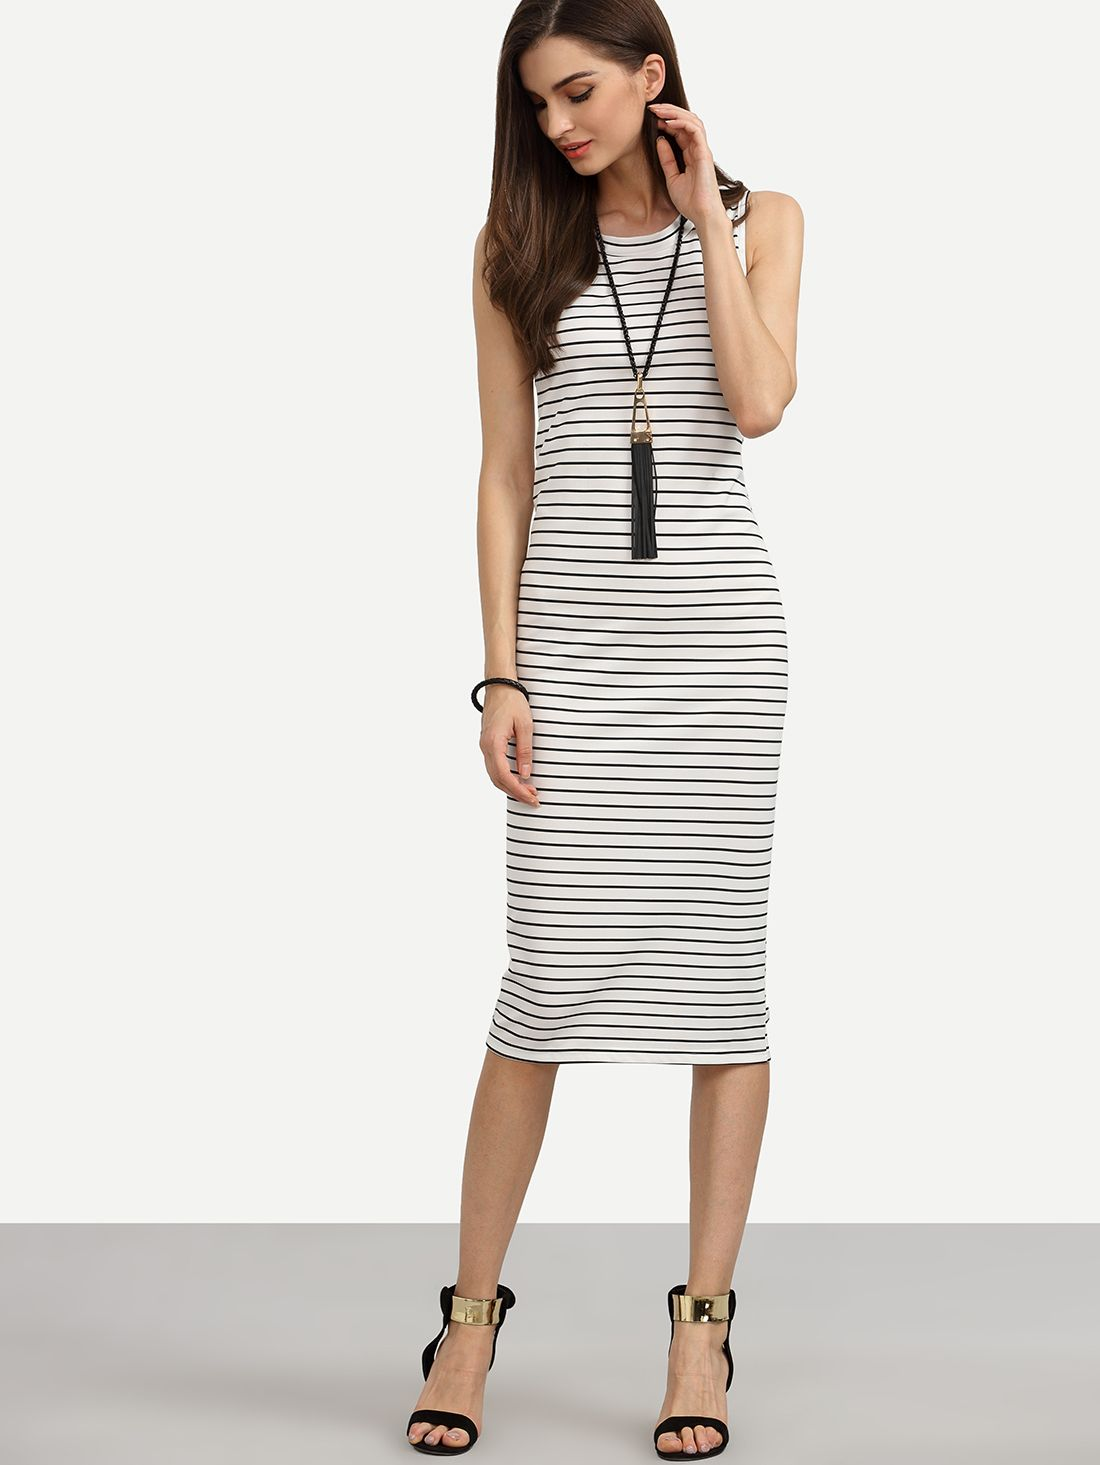 b55085d872 Shop White Striped Sheath Tank Dress online. SheIn offers White Striped  Sheath Tank Dress & more to fit your fashionable needs.